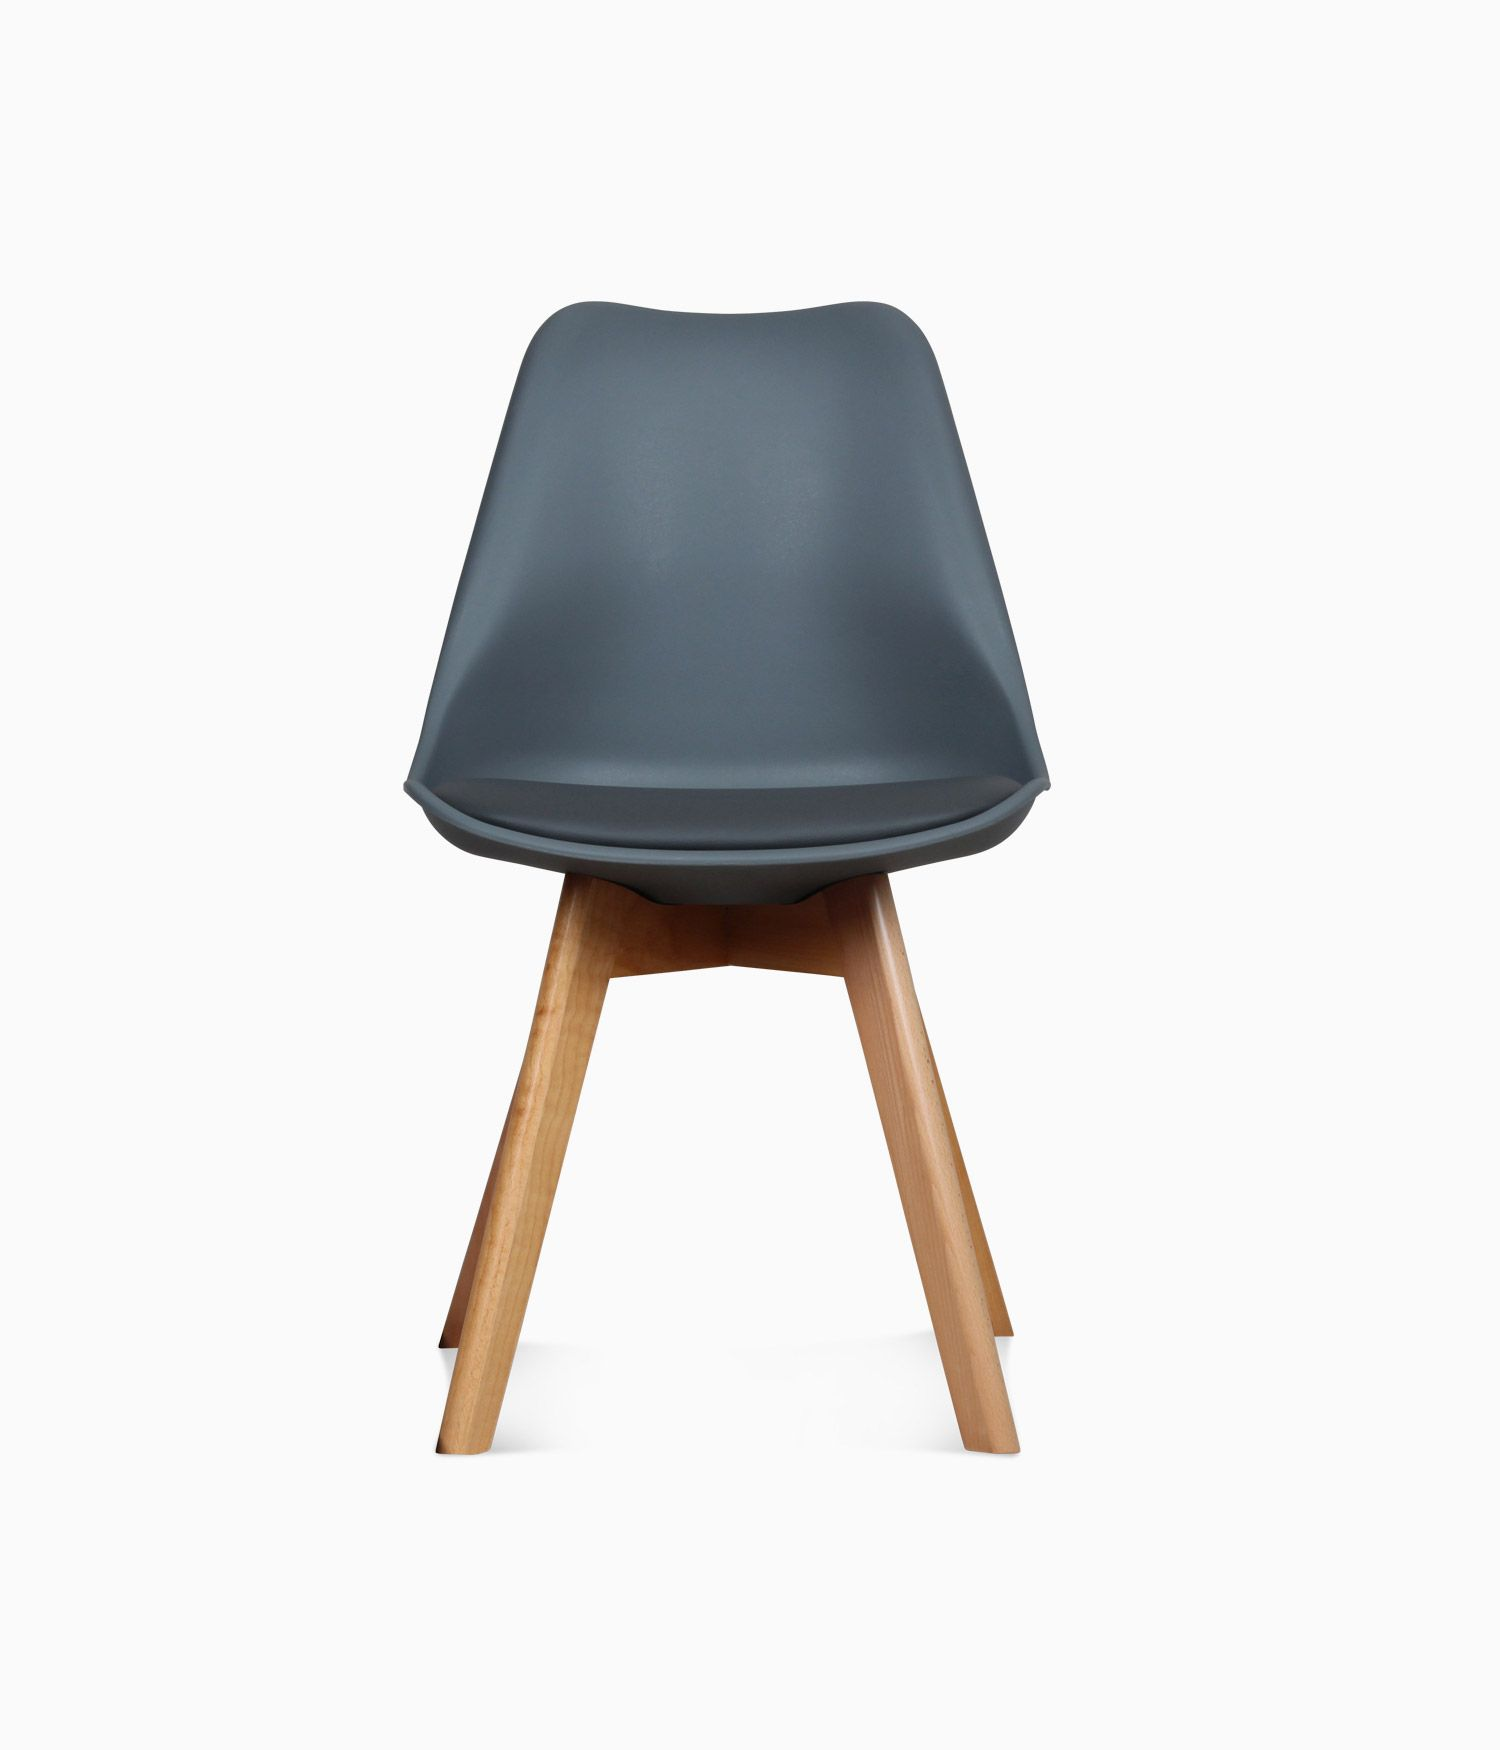 Chaise design scandinave - Anthracite